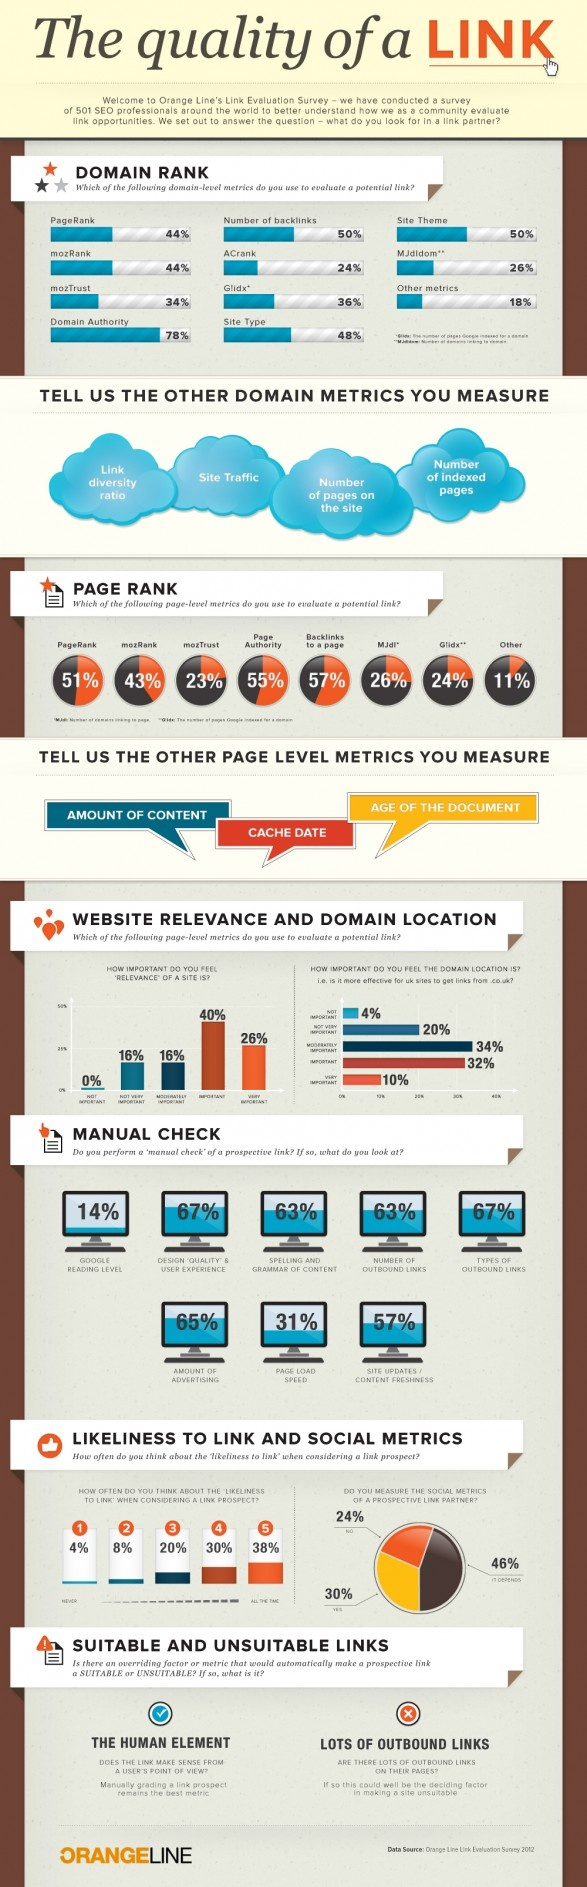 The Quality of a Link  The infographic is about the quality of a link created by OrangeLine.They have conducted a survey of 501 SEO professionals around the world to understand how community evaulate link opportunities. #infographic #link #quality